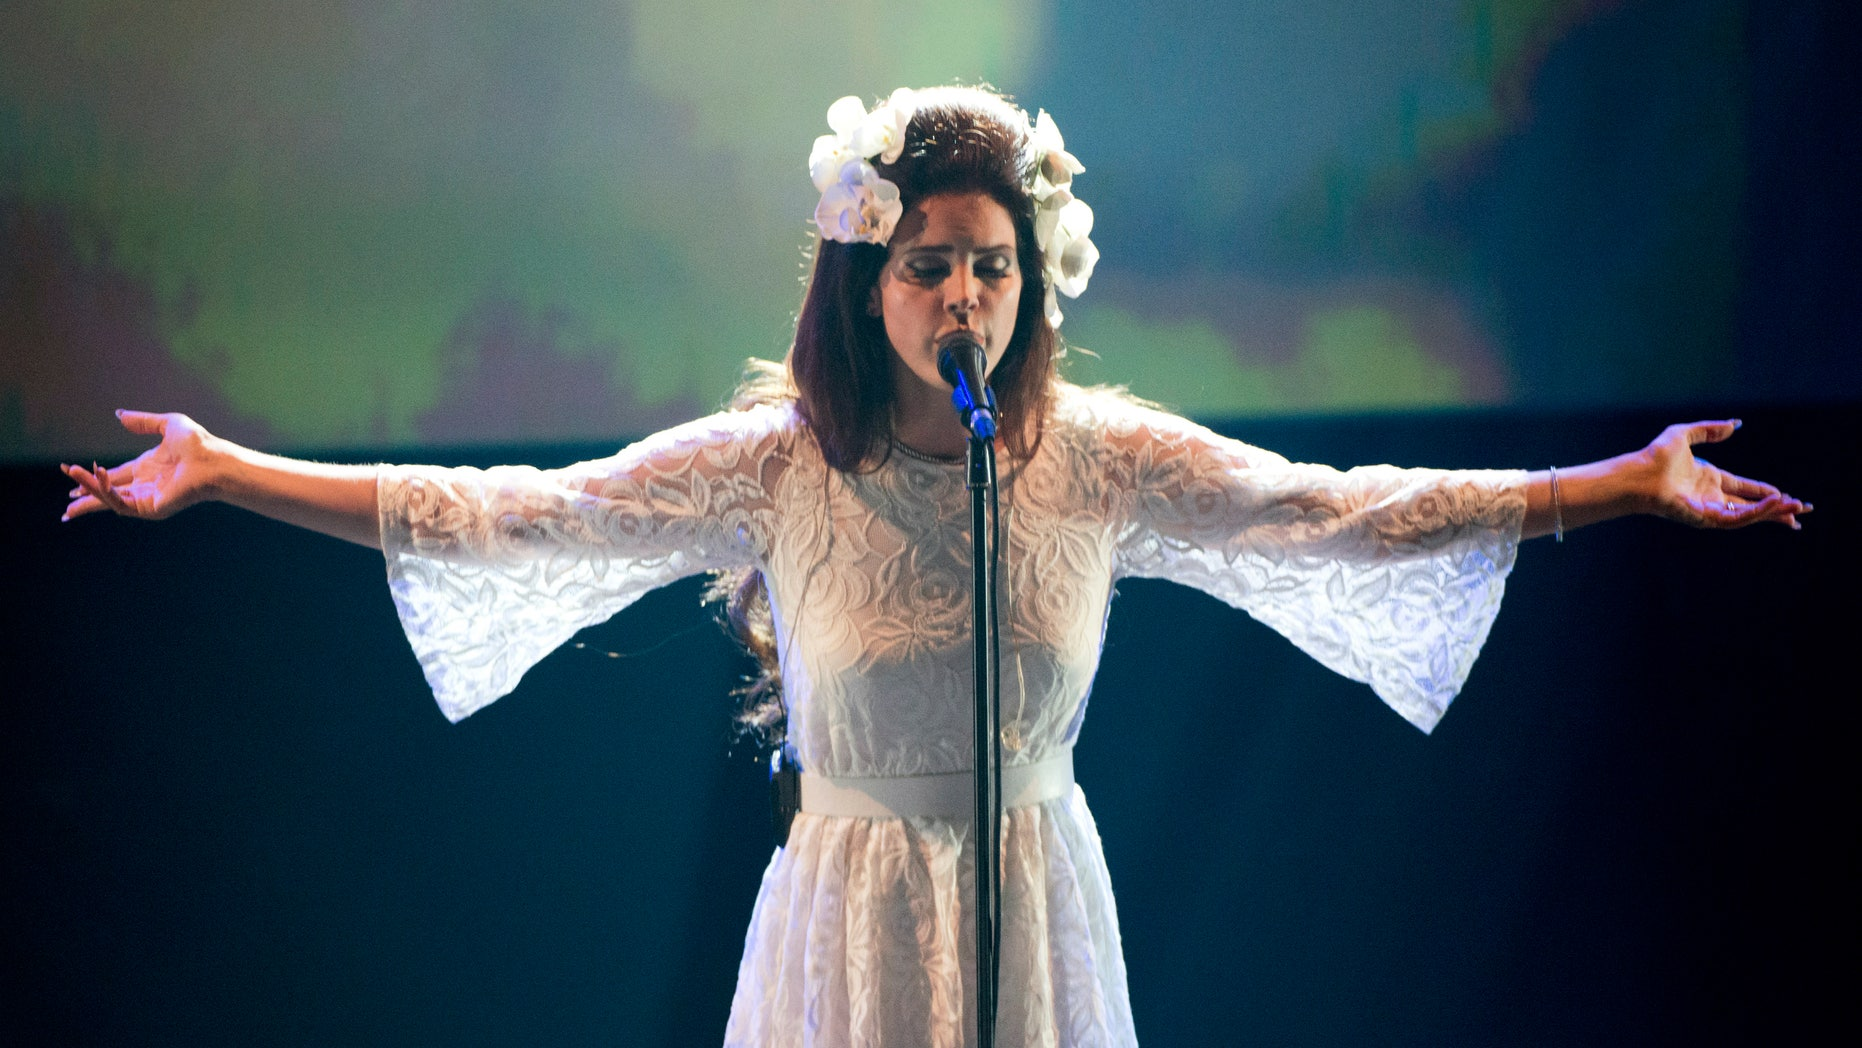 July 4, 2012. Singer Lana del Rey performs in the Miles Davis Hall during the 46th Montreux Jazz Festival.